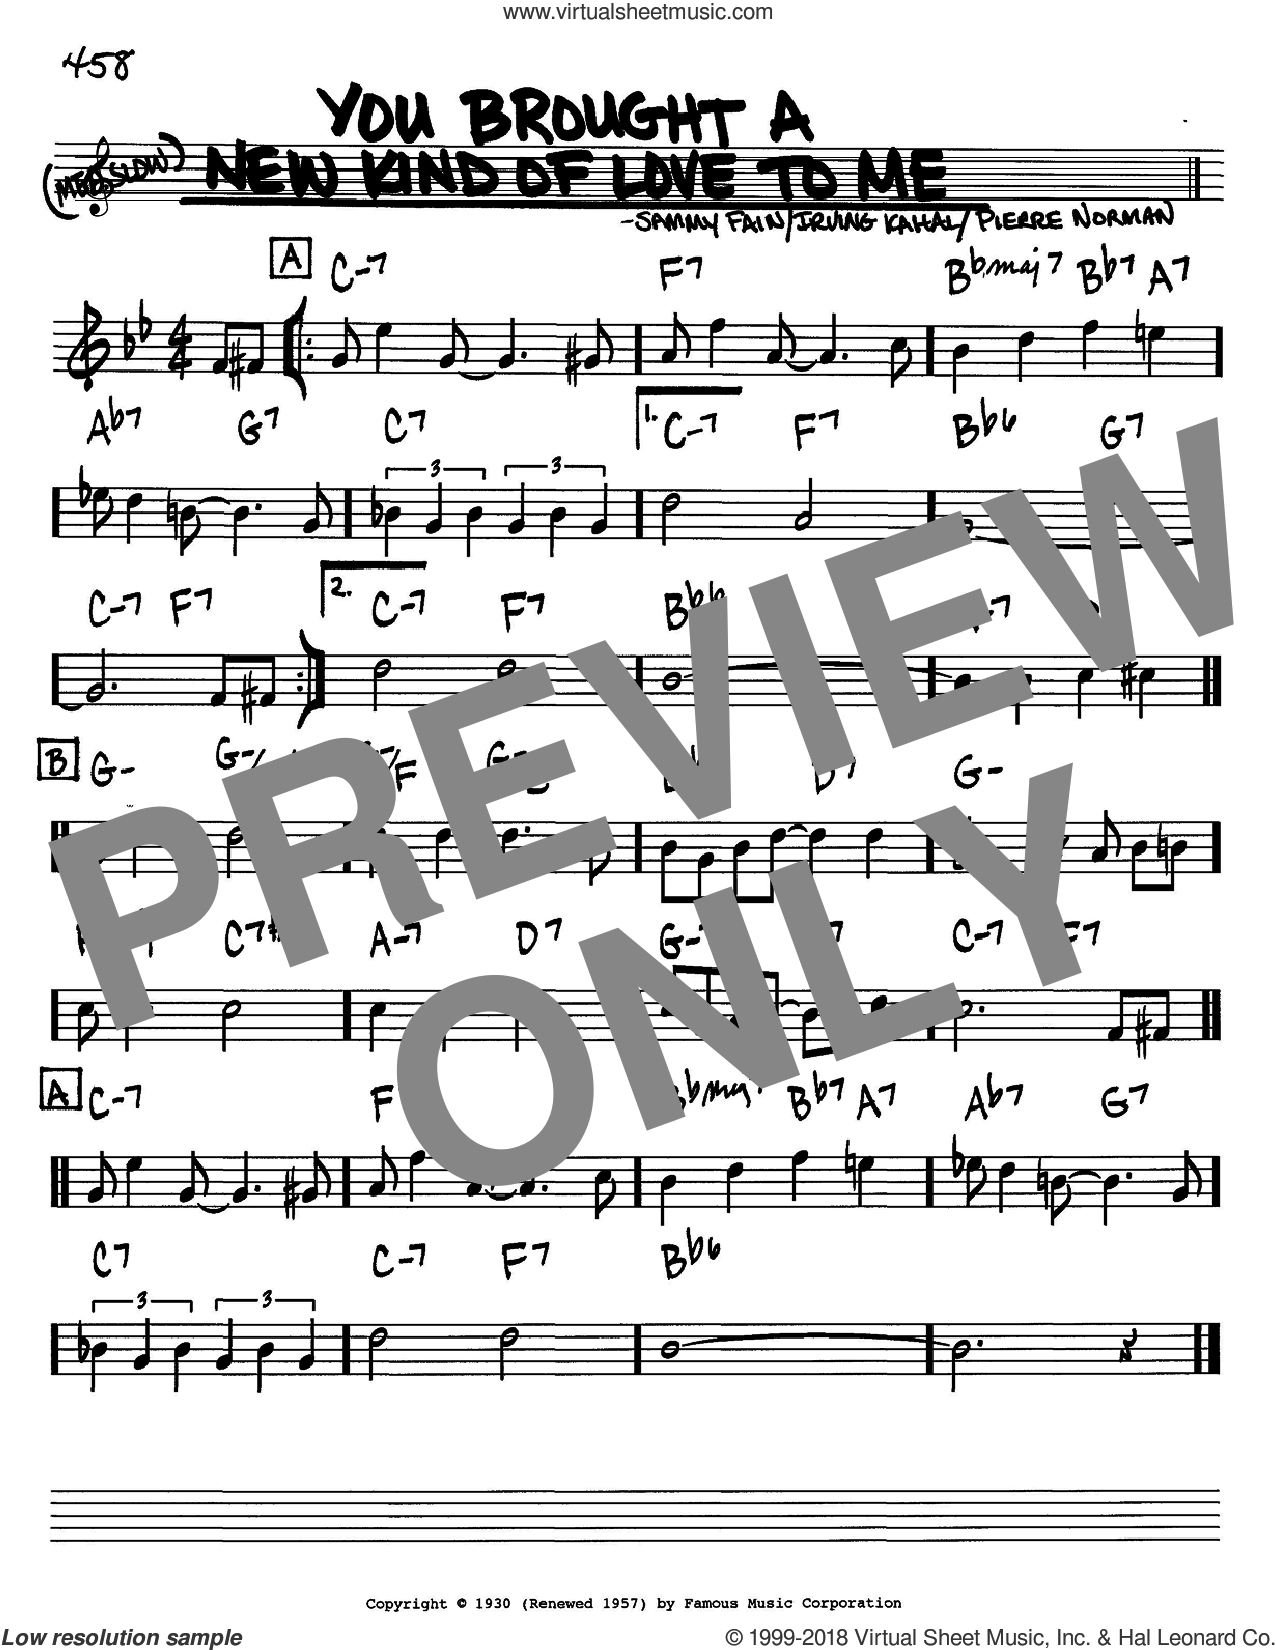 You Brought A New Kind Of Love To Me sheet music for voice and other instruments (in Bb) by Frank Sinatra, Irving Kahal, Pierre Norman and Sammy Fain, intermediate skill level